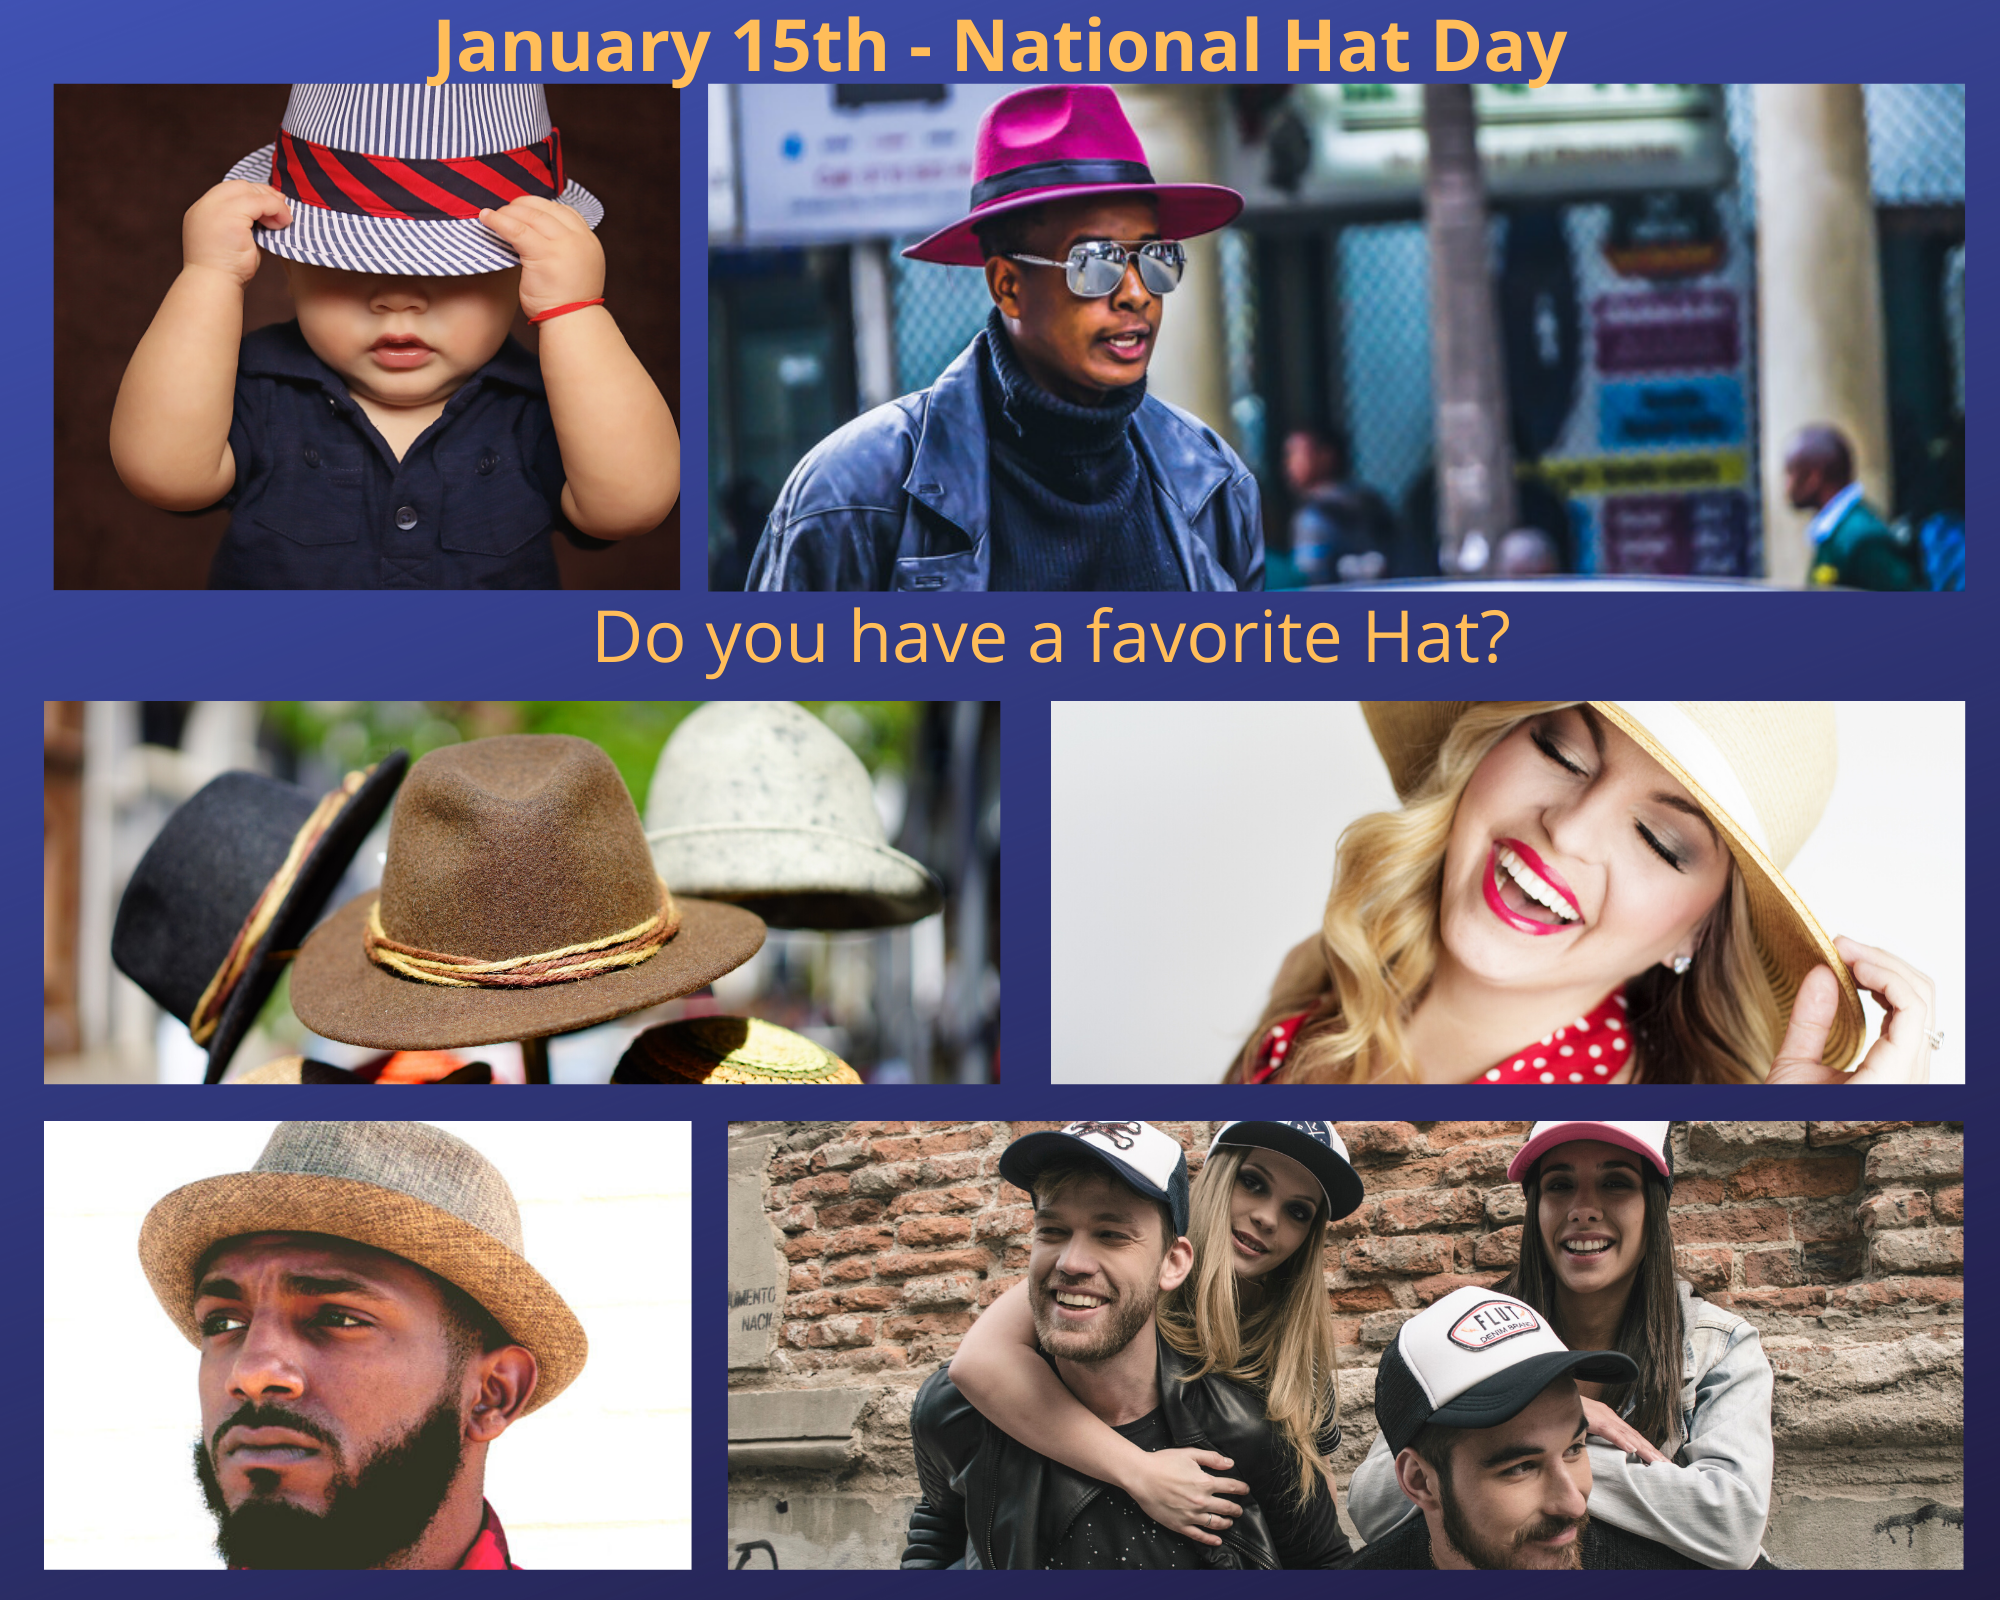 Be Sure To Wear A Hat And Use Nationalhatday To Post On Social Media And Share With Us Hat Day Wearing A Hat Supportive